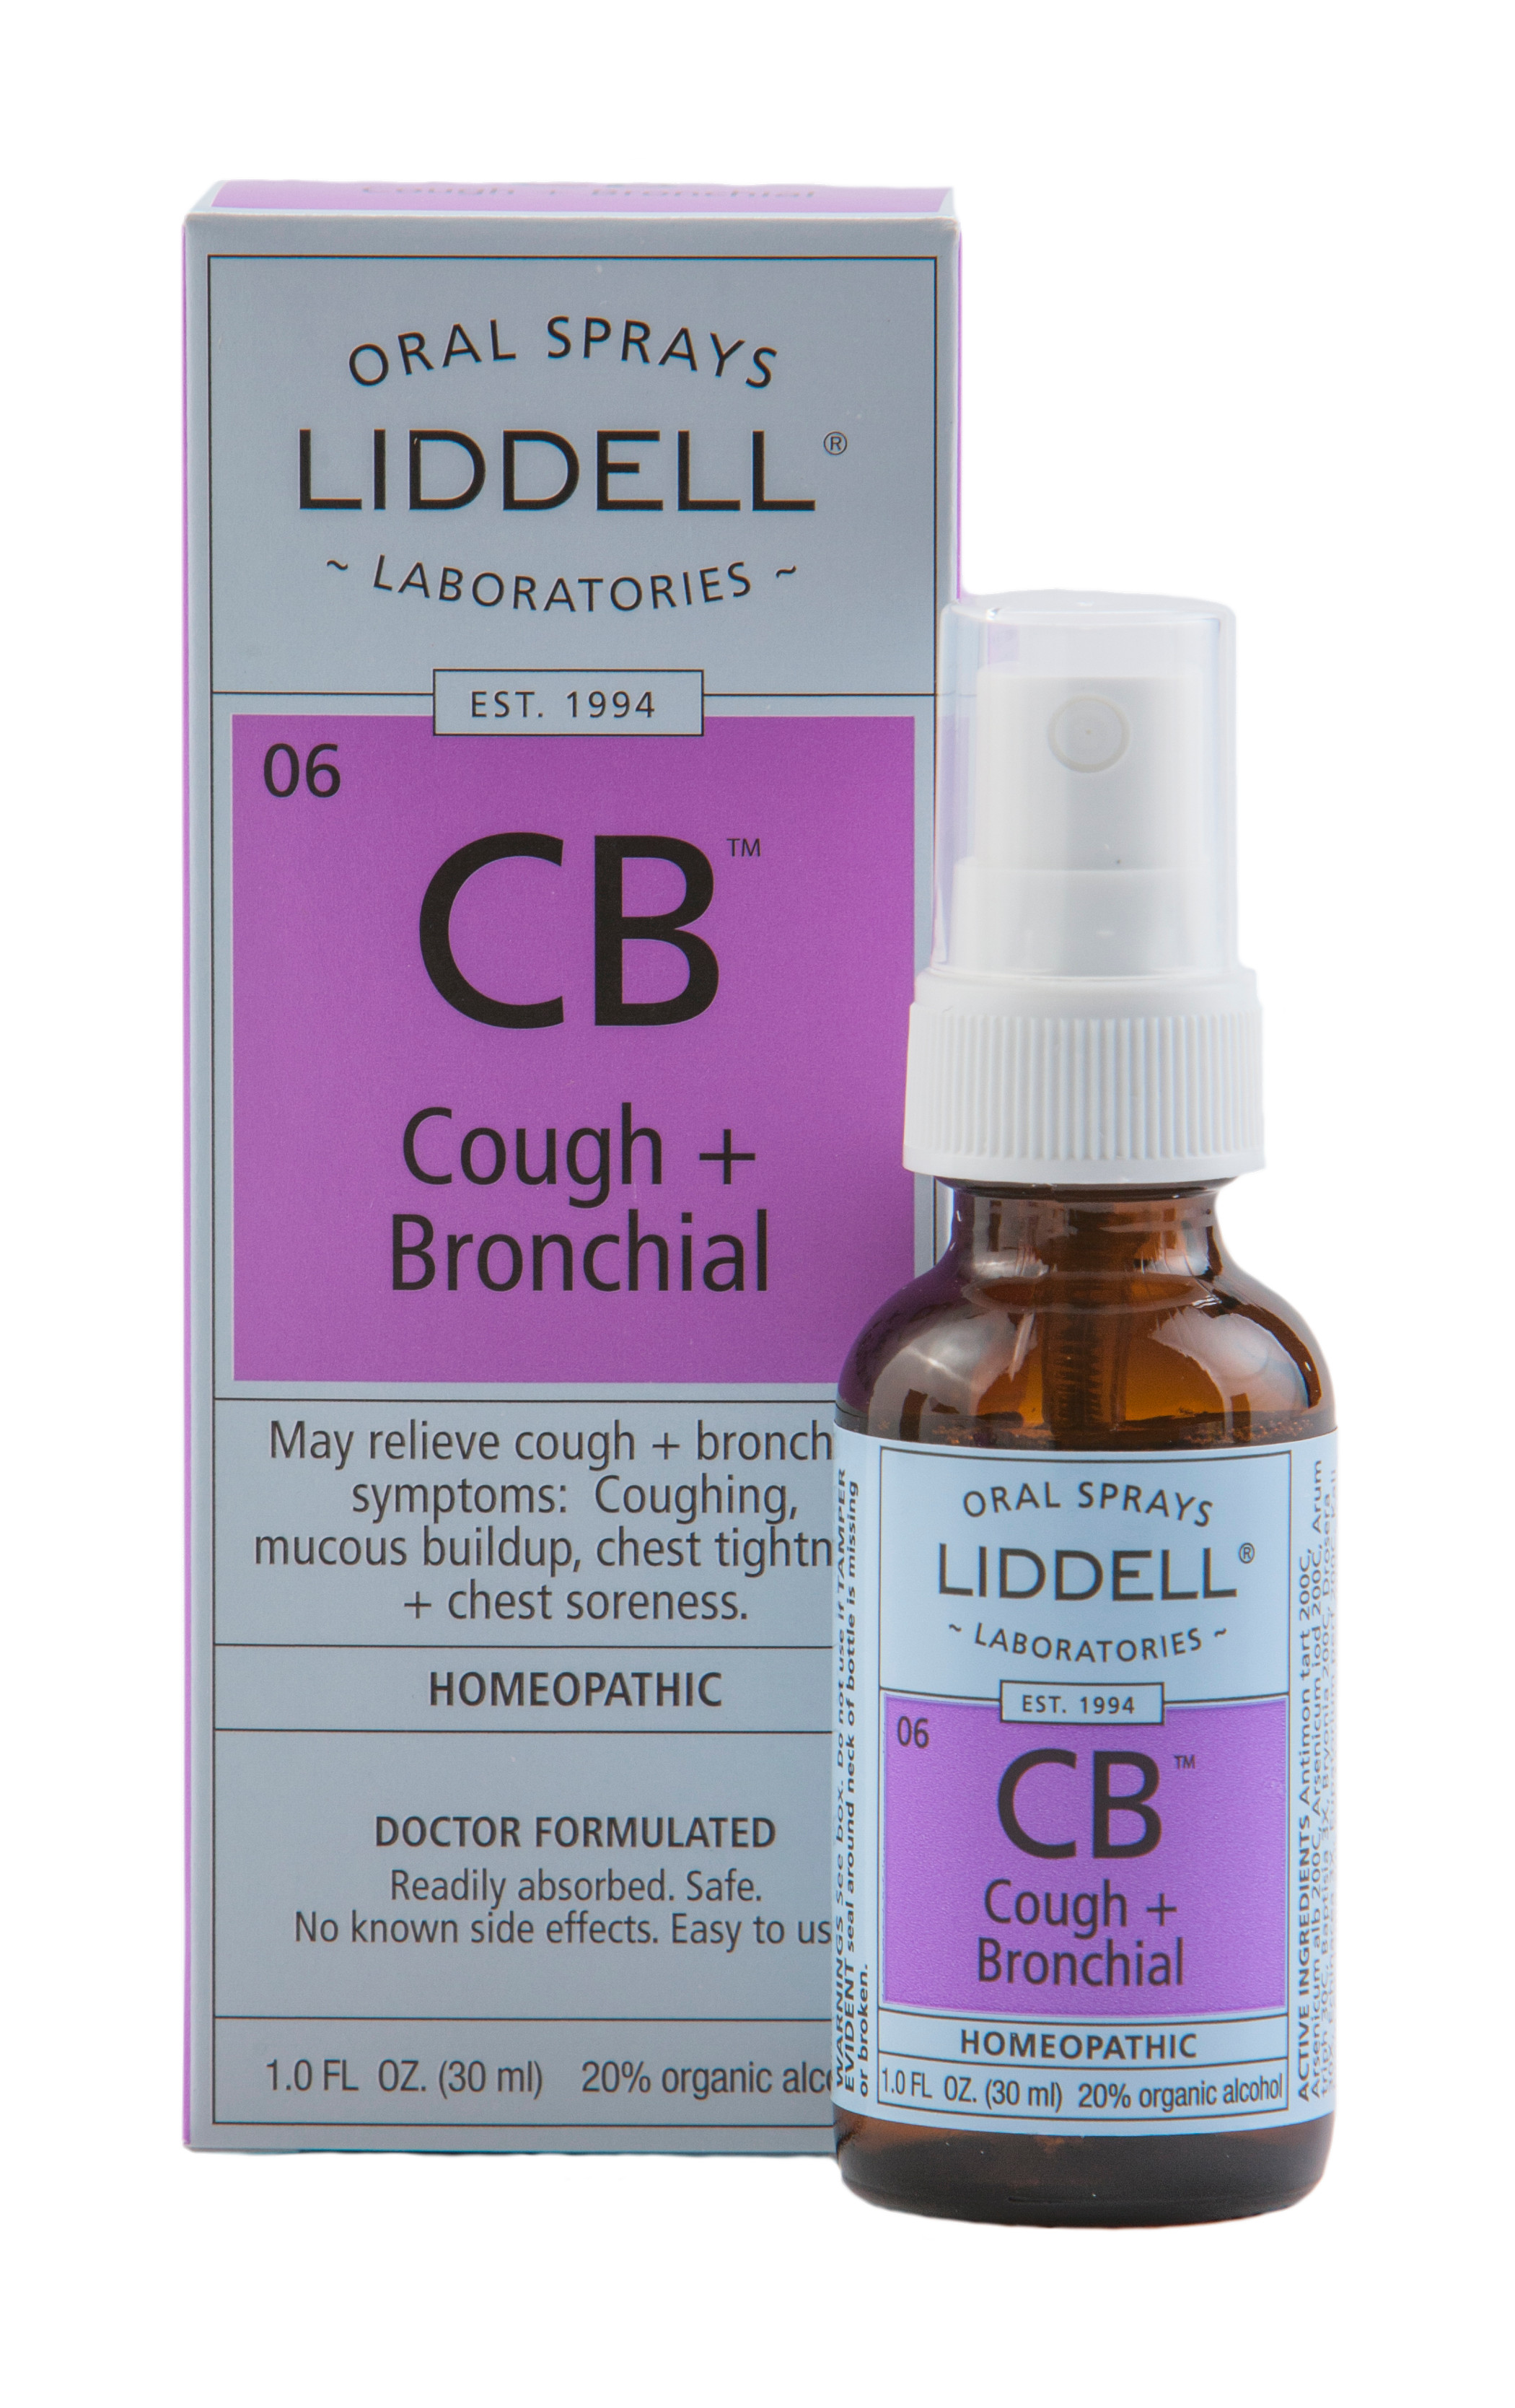 CB, Cough + Bronchial